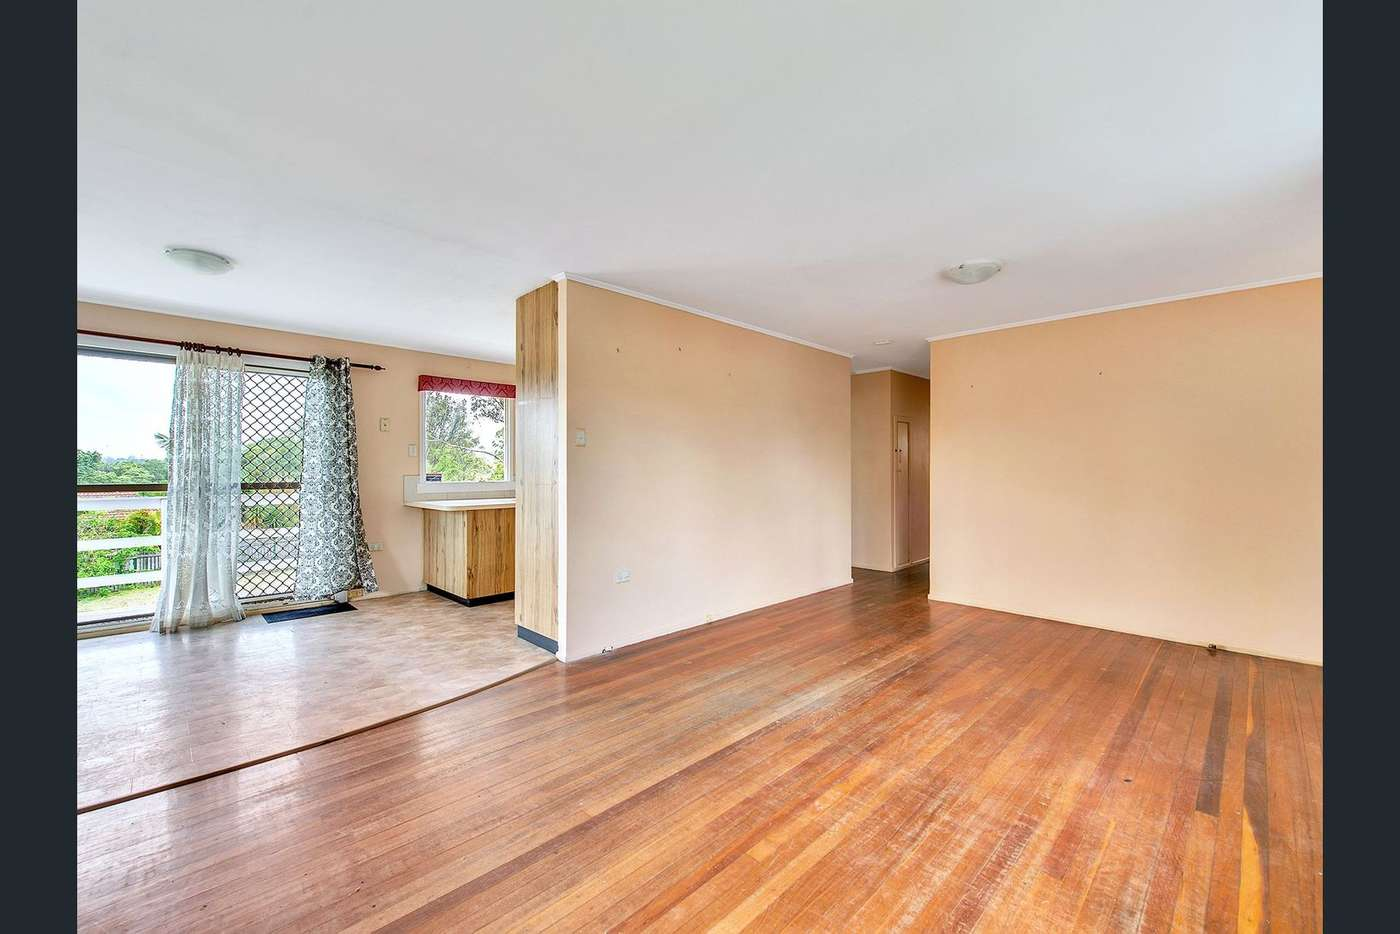 Sixth view of Homely house listing, 130 Lister Street, Sunnybank QLD 4109